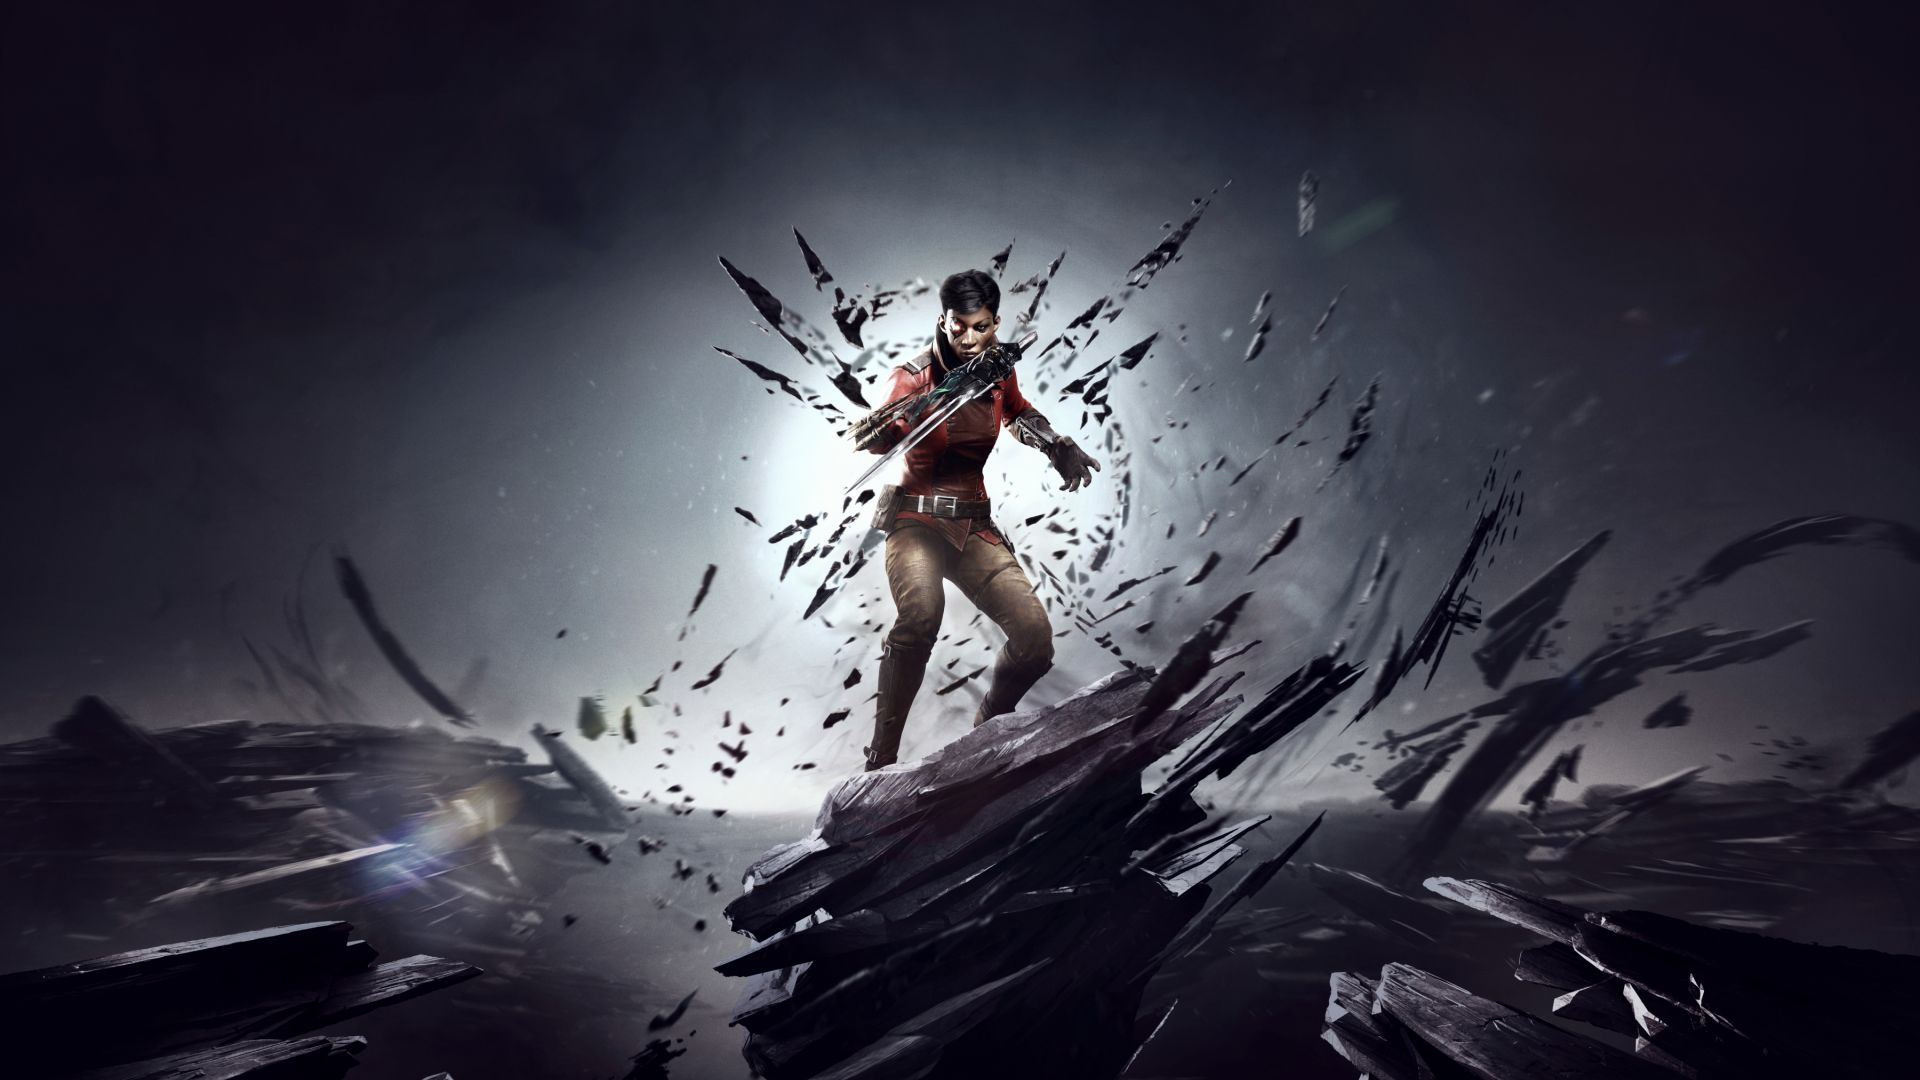 Wallpaper Dishonored: Death Of The Outsider, 2017 game, video game